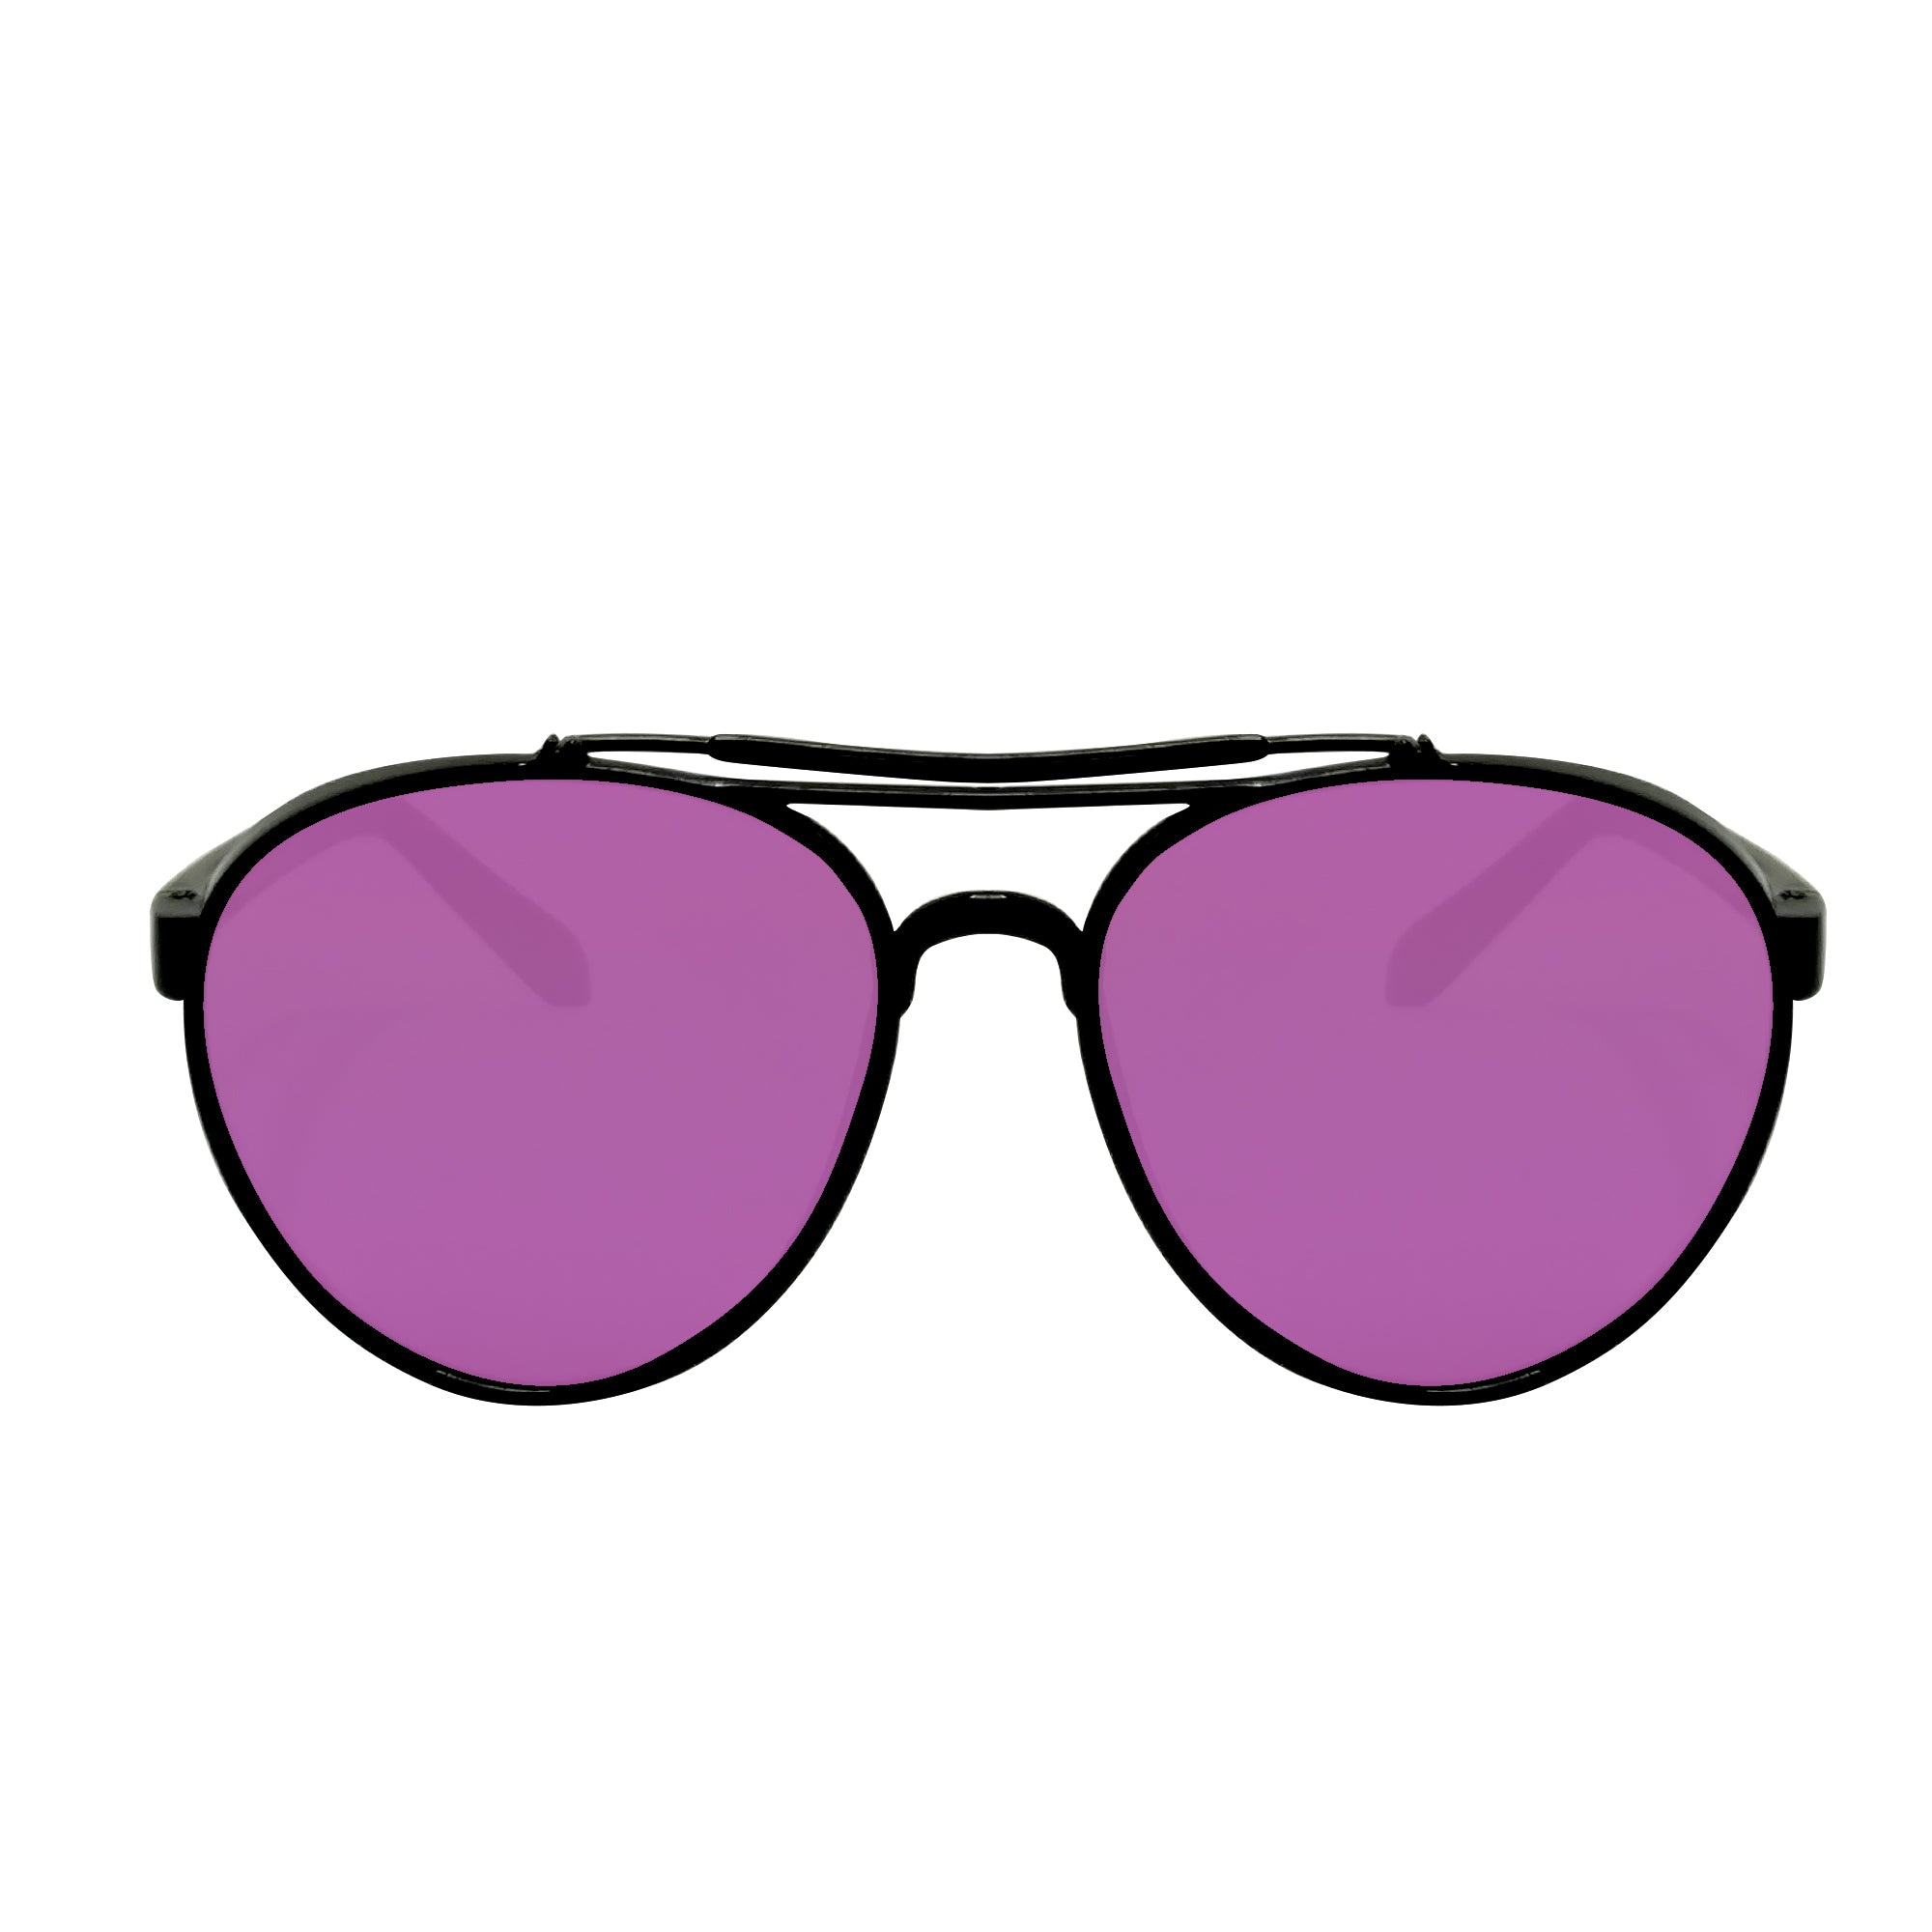 Spec Frames - Black w/ Purple Lens